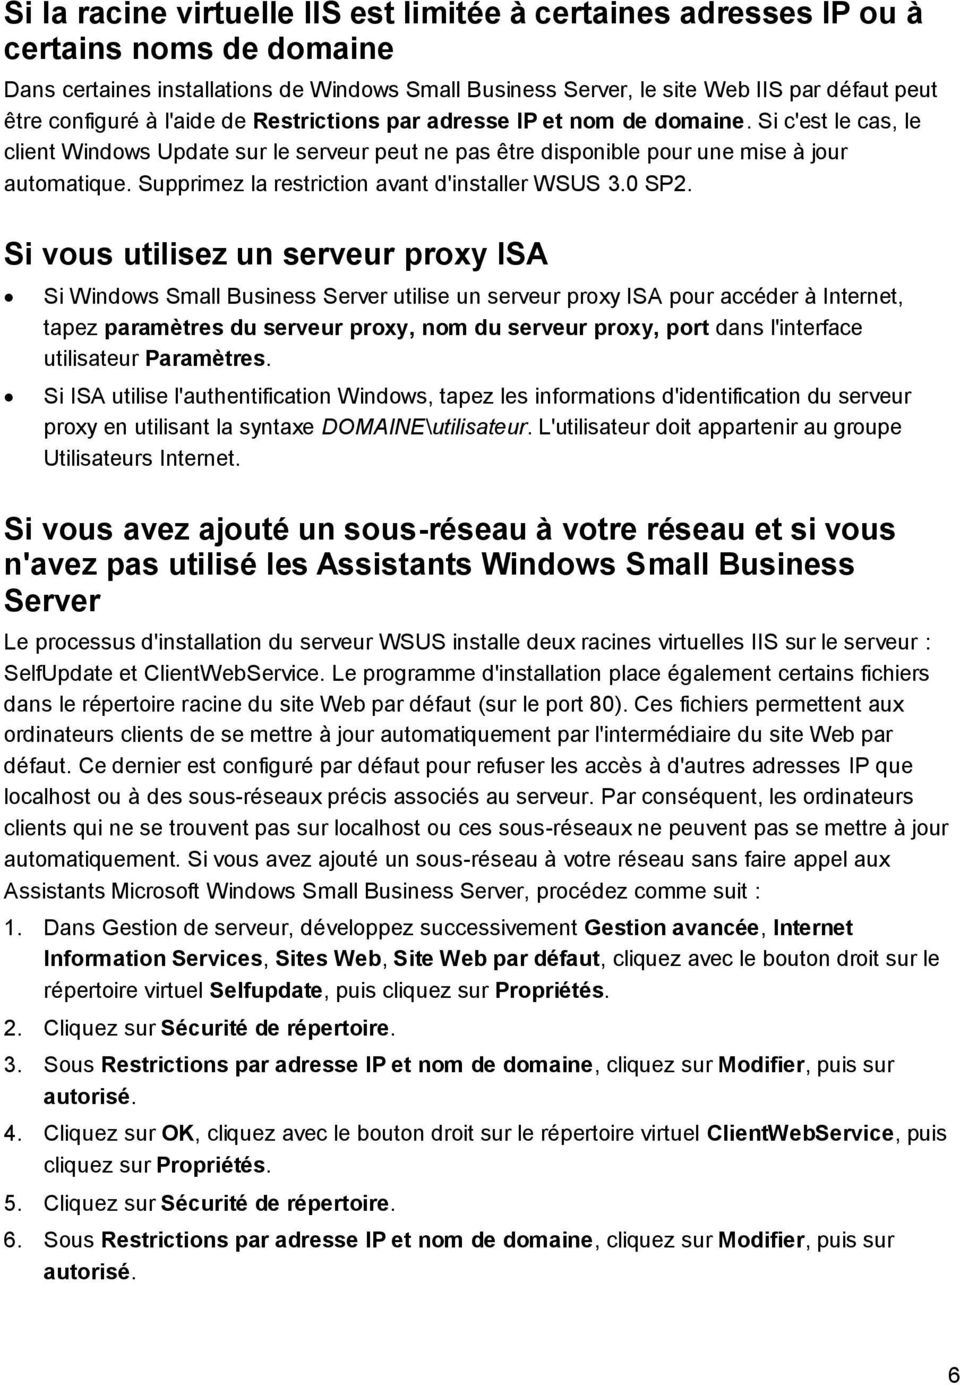 Supprimez la restriction avant d'installer WSUS 3.0 SP2.